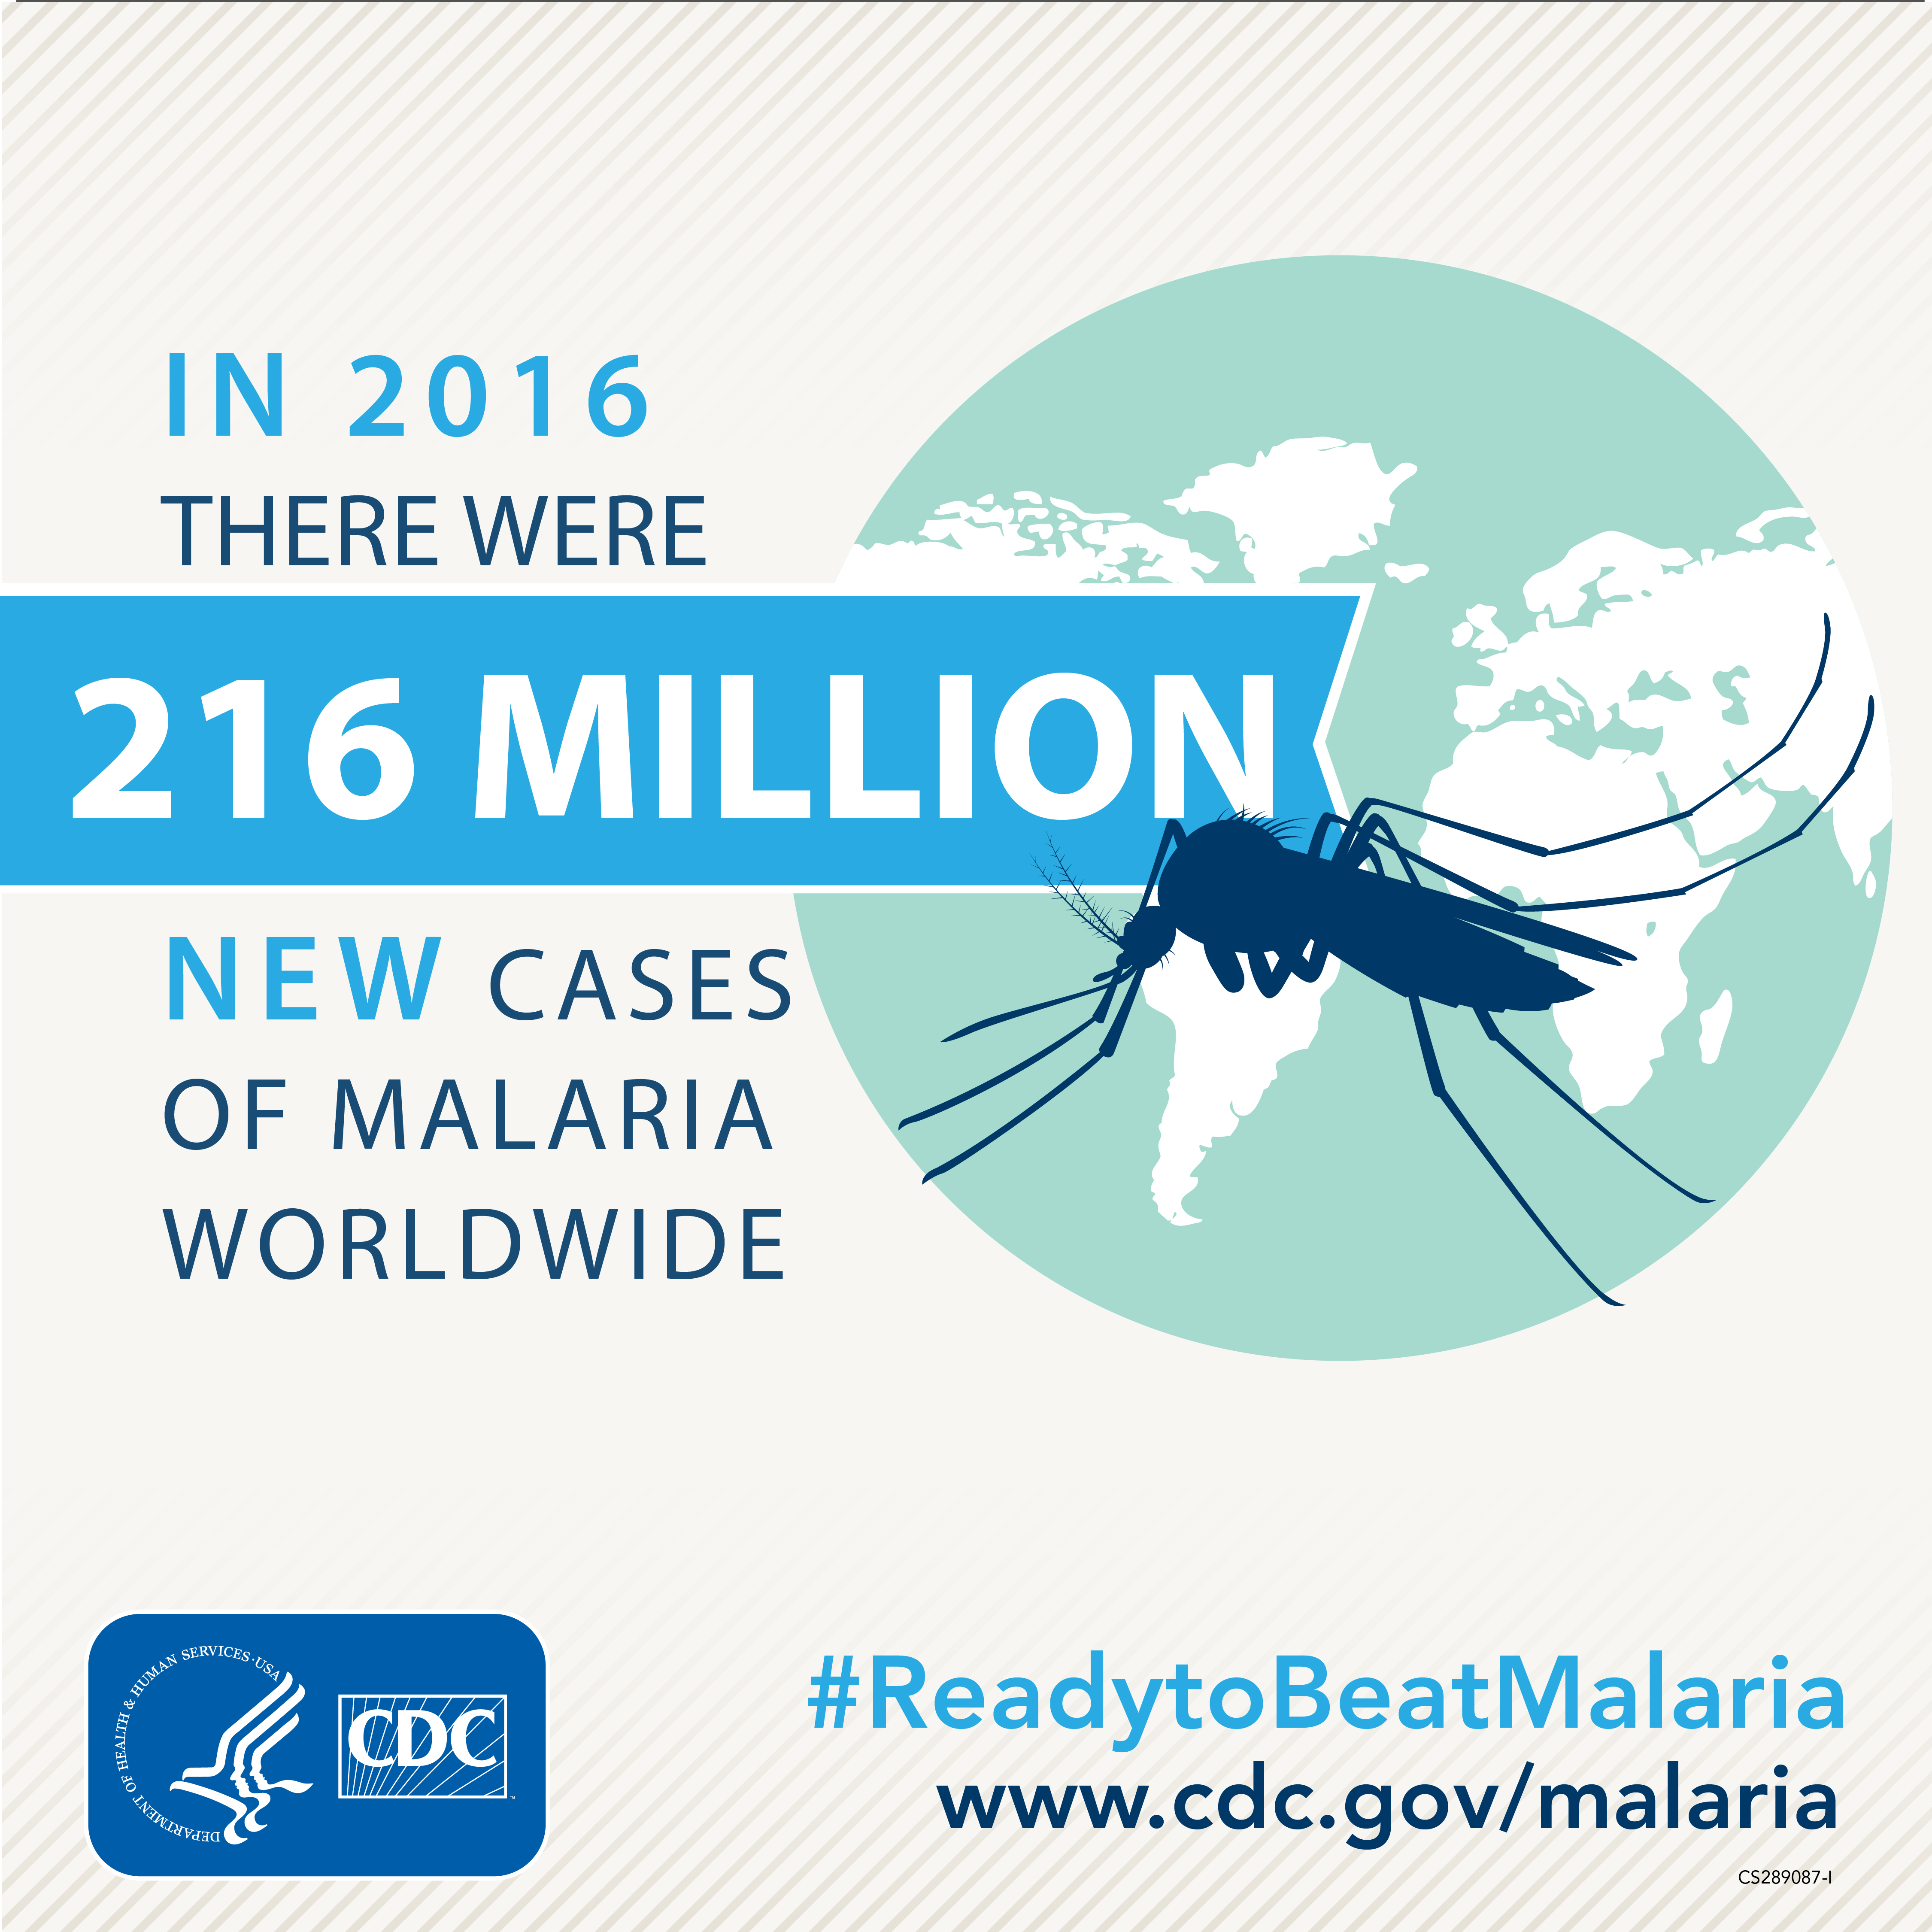 In 2016 there were 216 million new cases og malaria worldwide